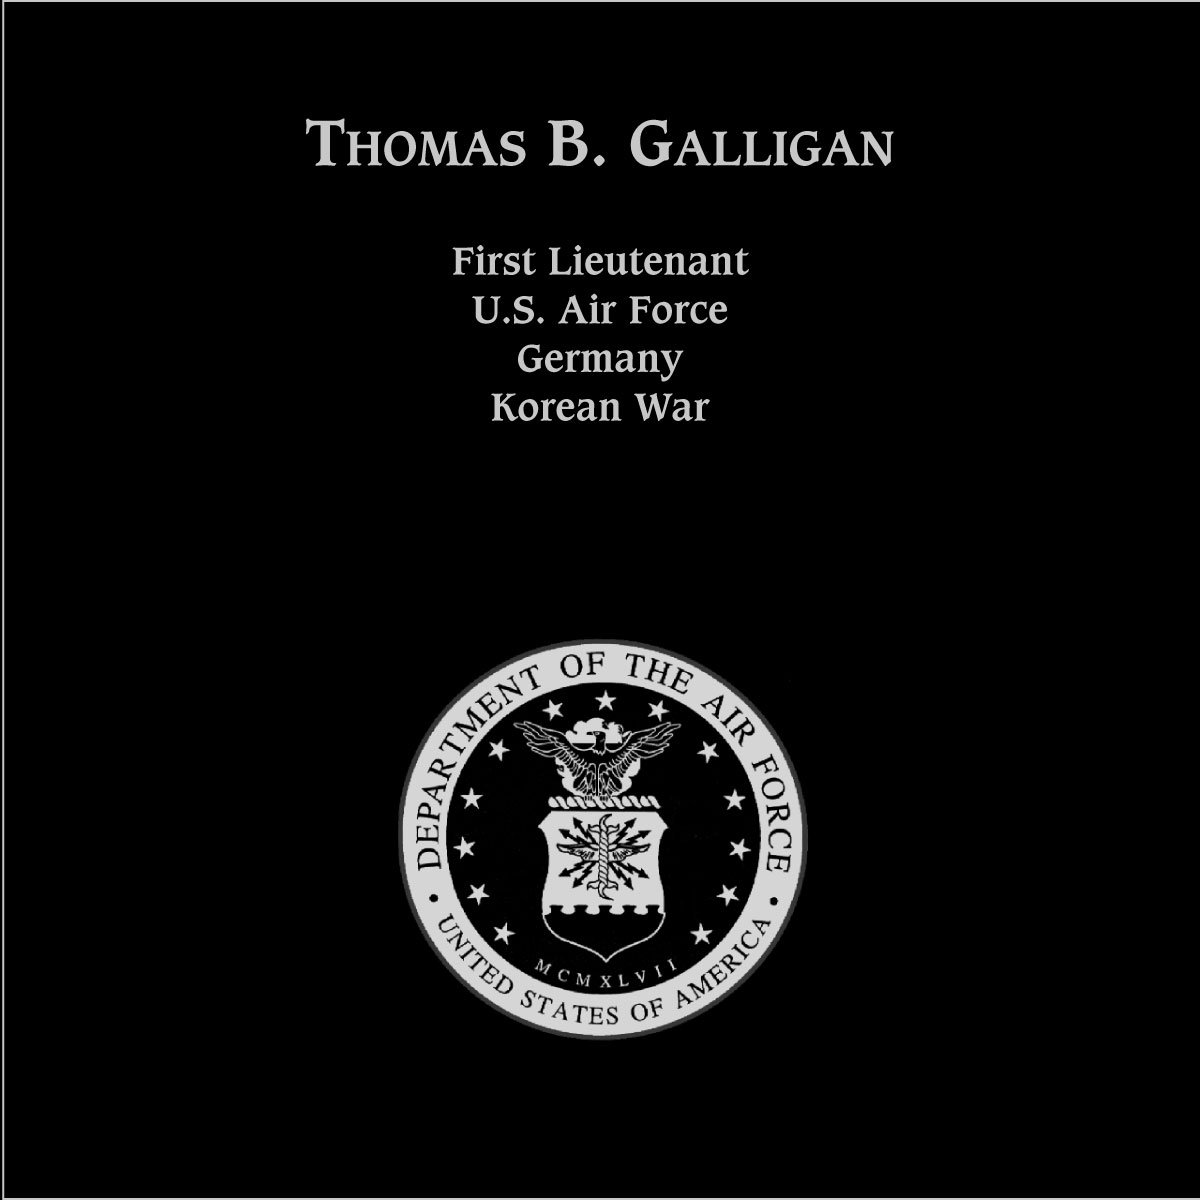 Thomas B. Galligan